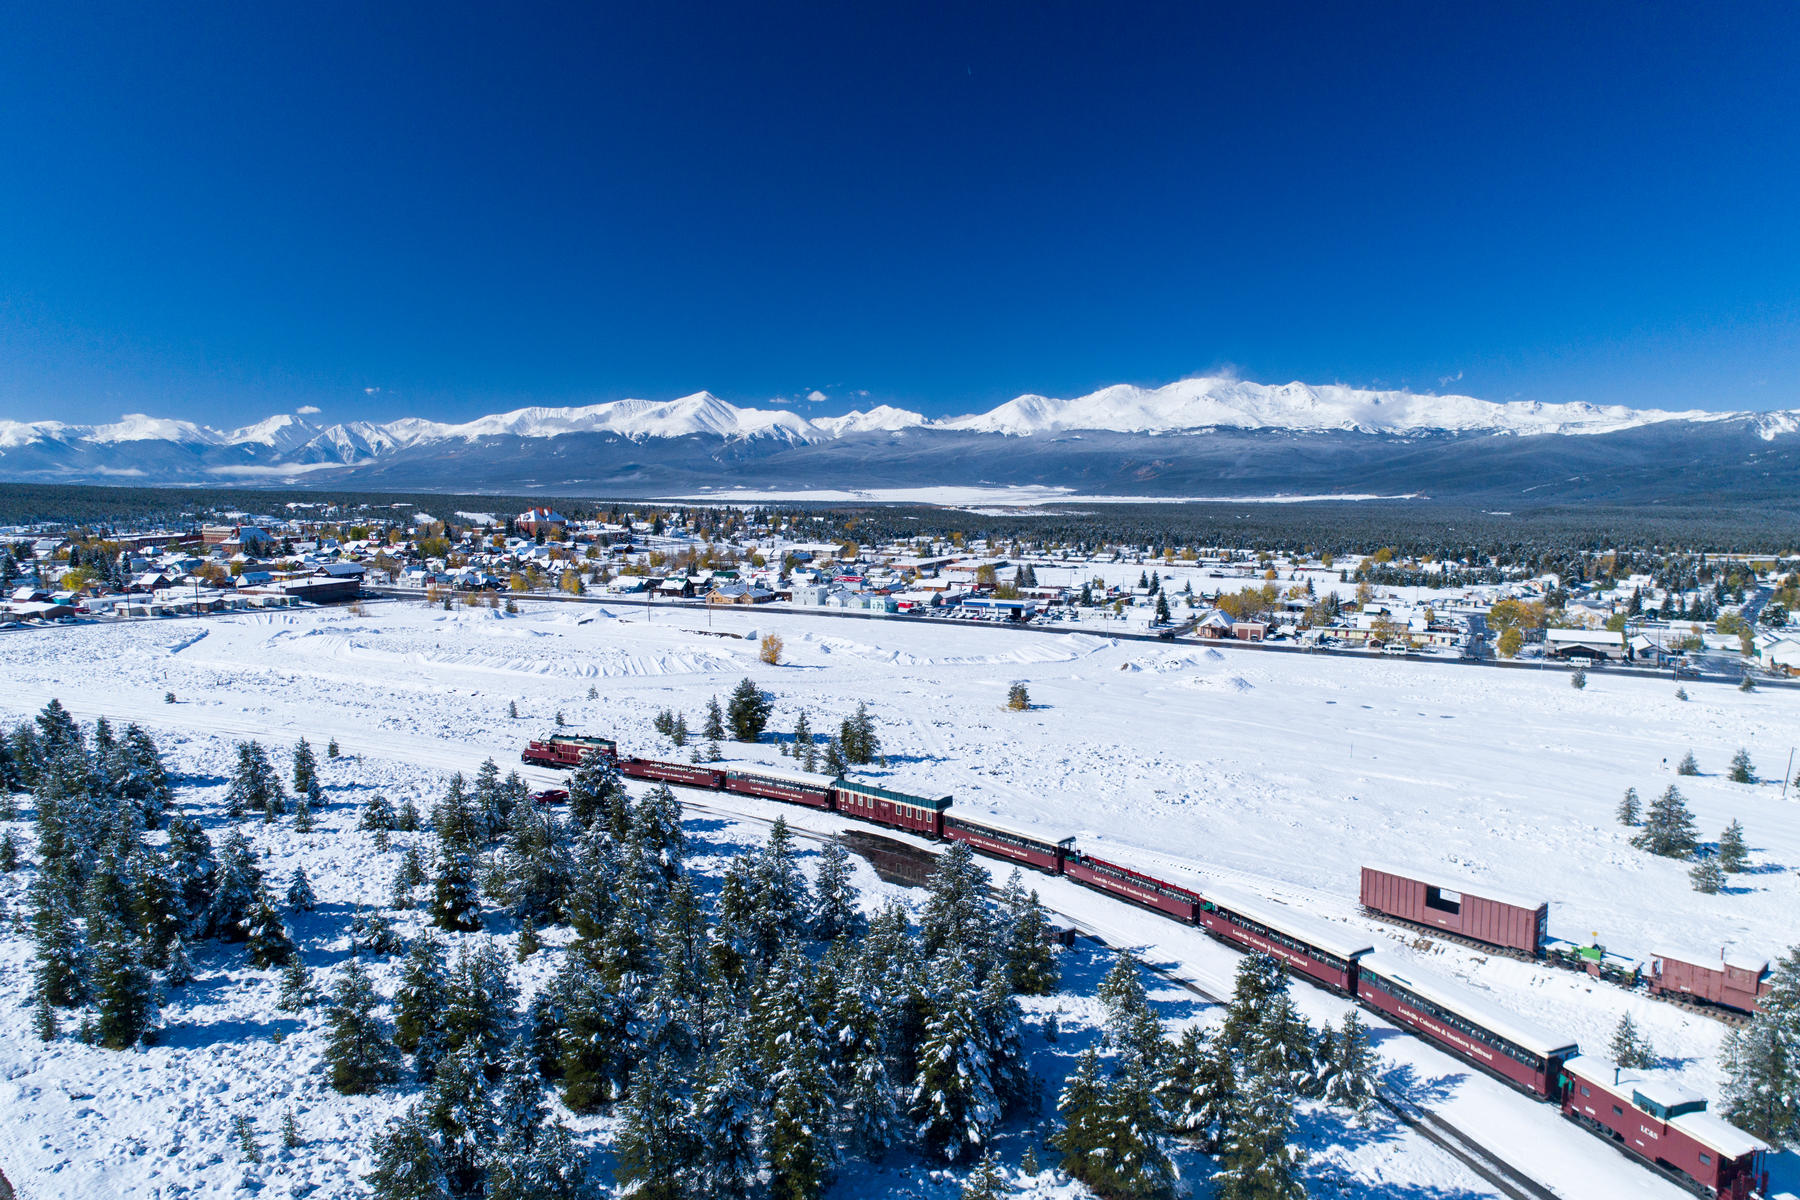 Additional photo for property listing at Ideal For An Apartment Building Or Mixed Use Development 388 Sizer Block 2, Lot 14 Leadville, Colorado 80461 United States